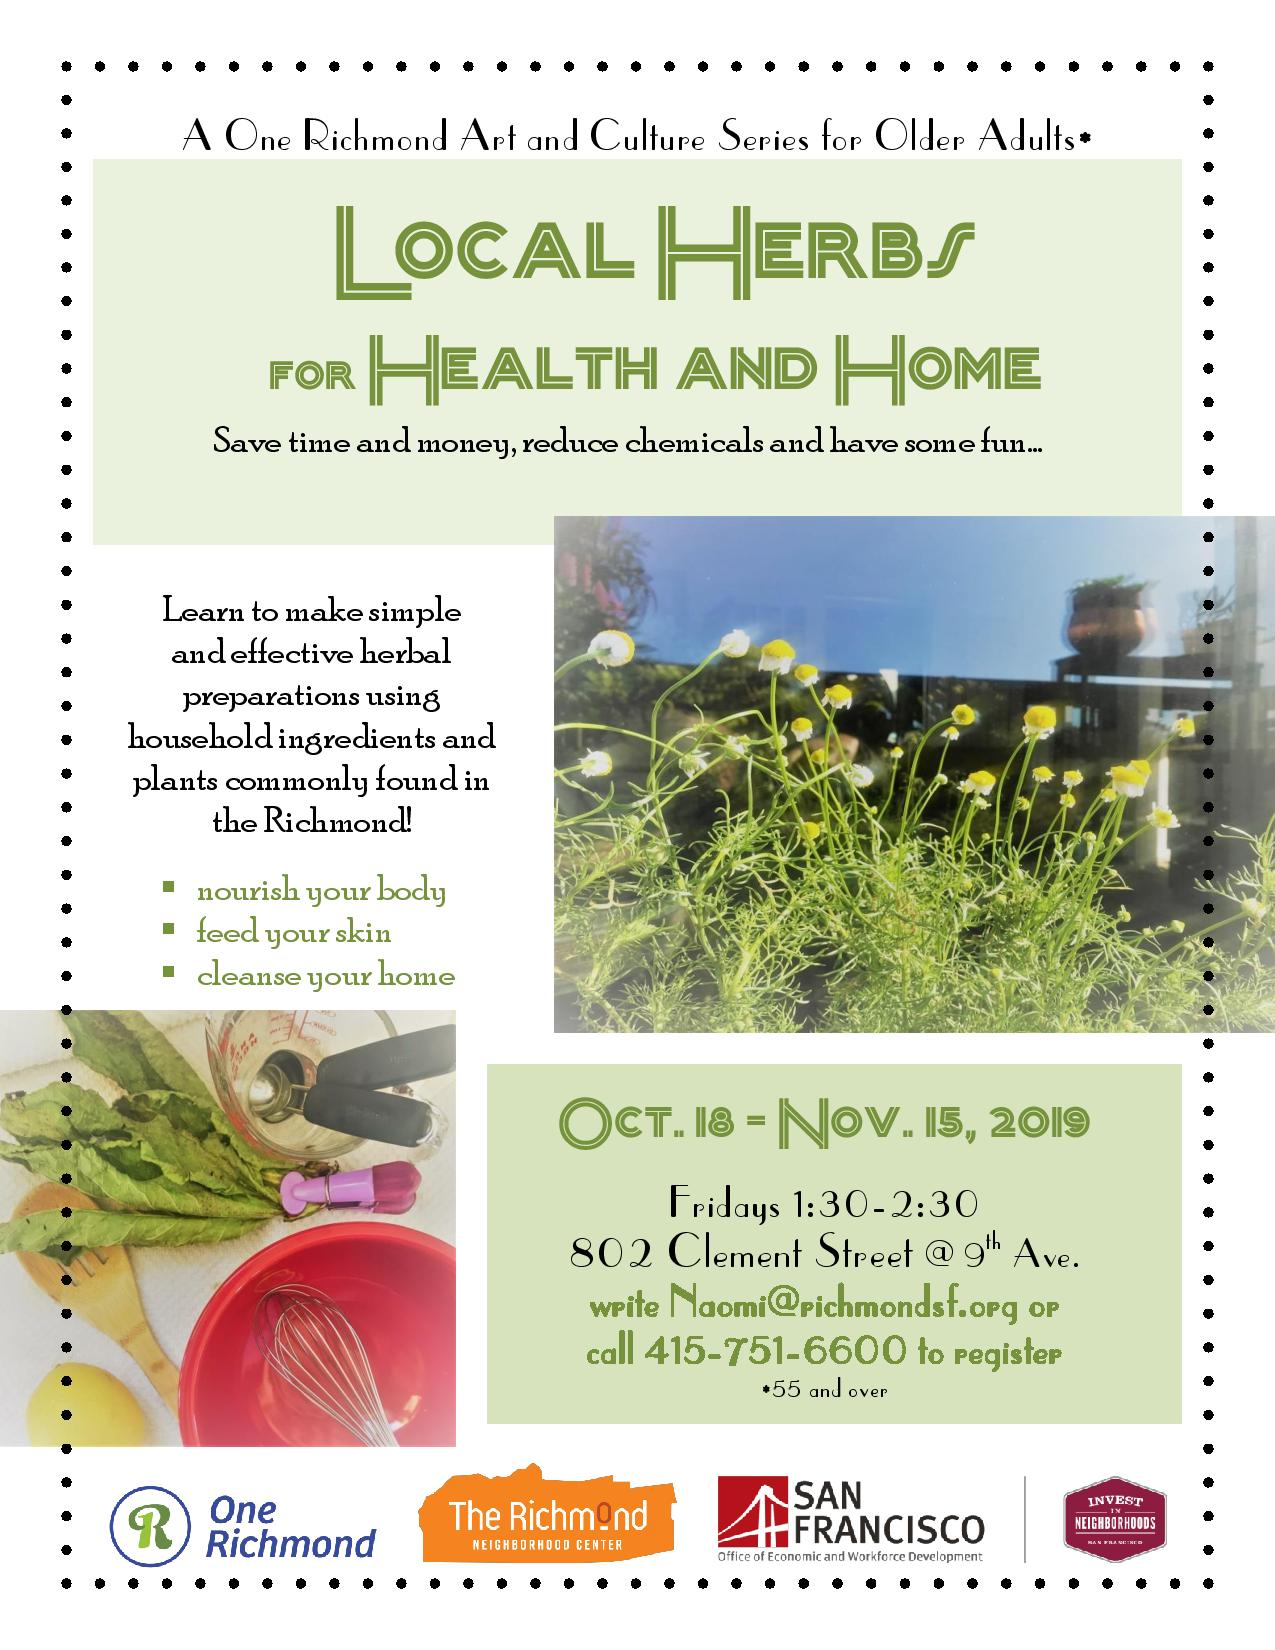 Local Herbs Workshop Flyer_V3-page-001.jpg